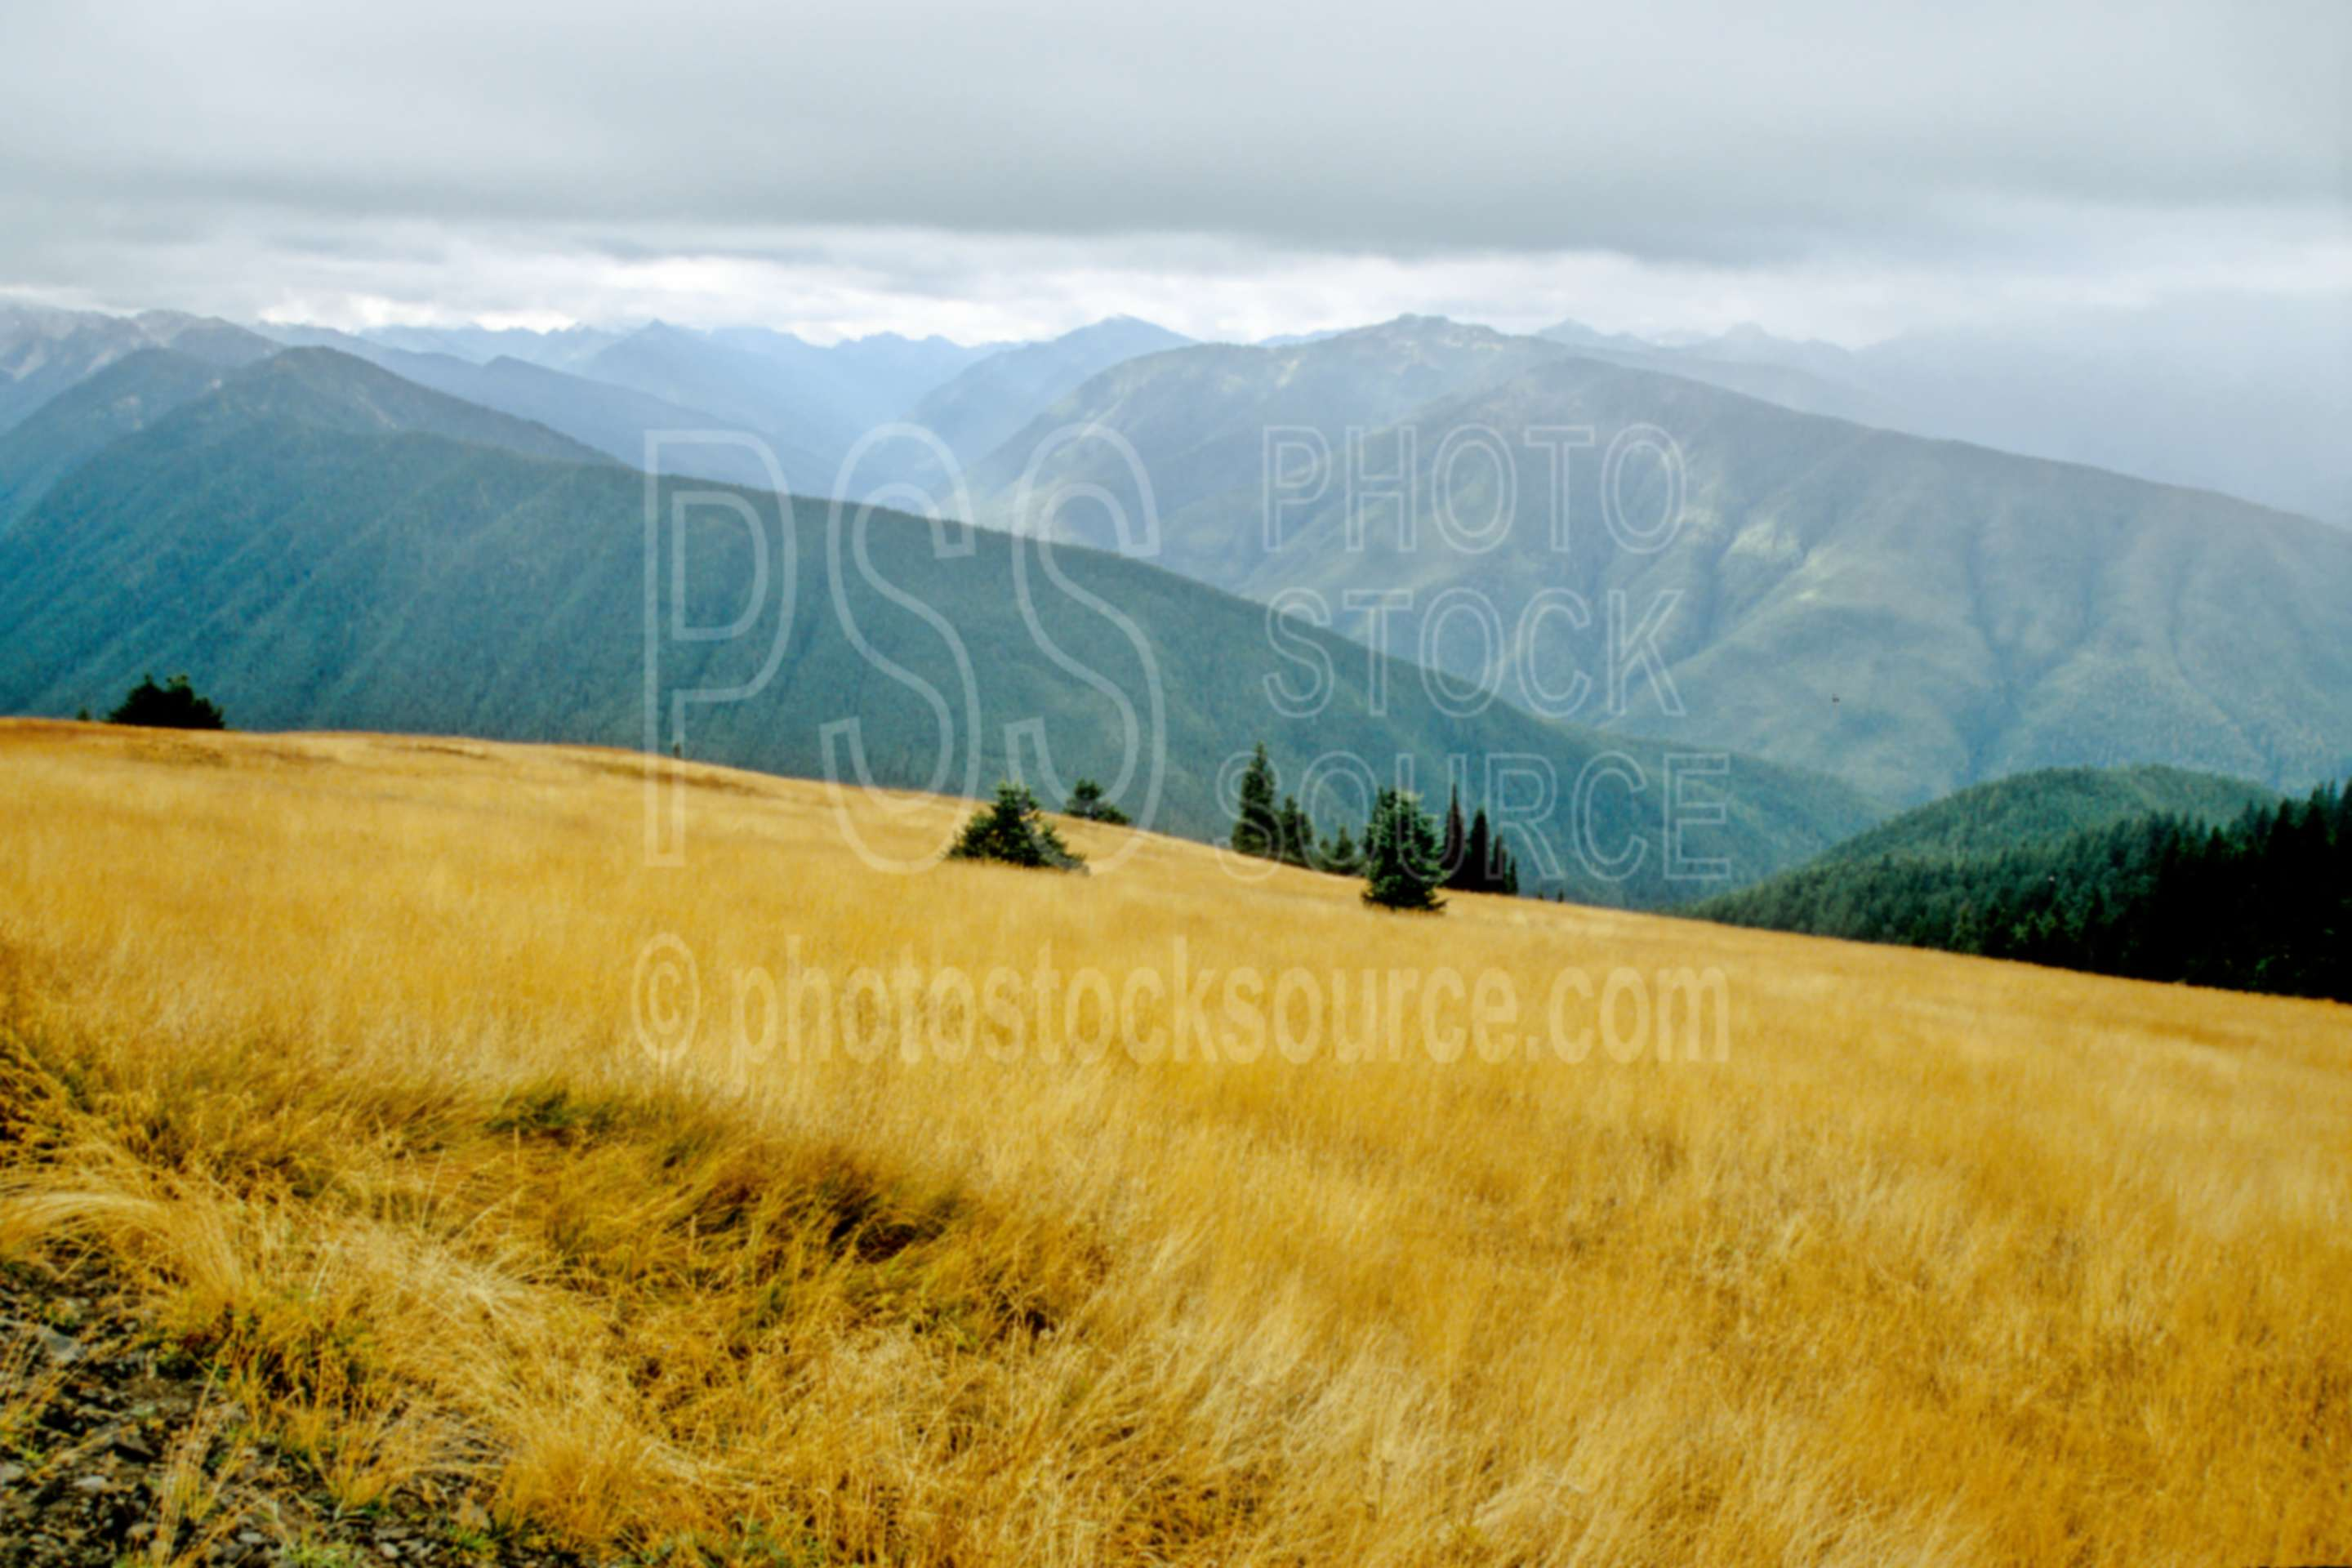 Hurricane Ridge,mt. olympus,olympic peninsula,usas,nature,mountains